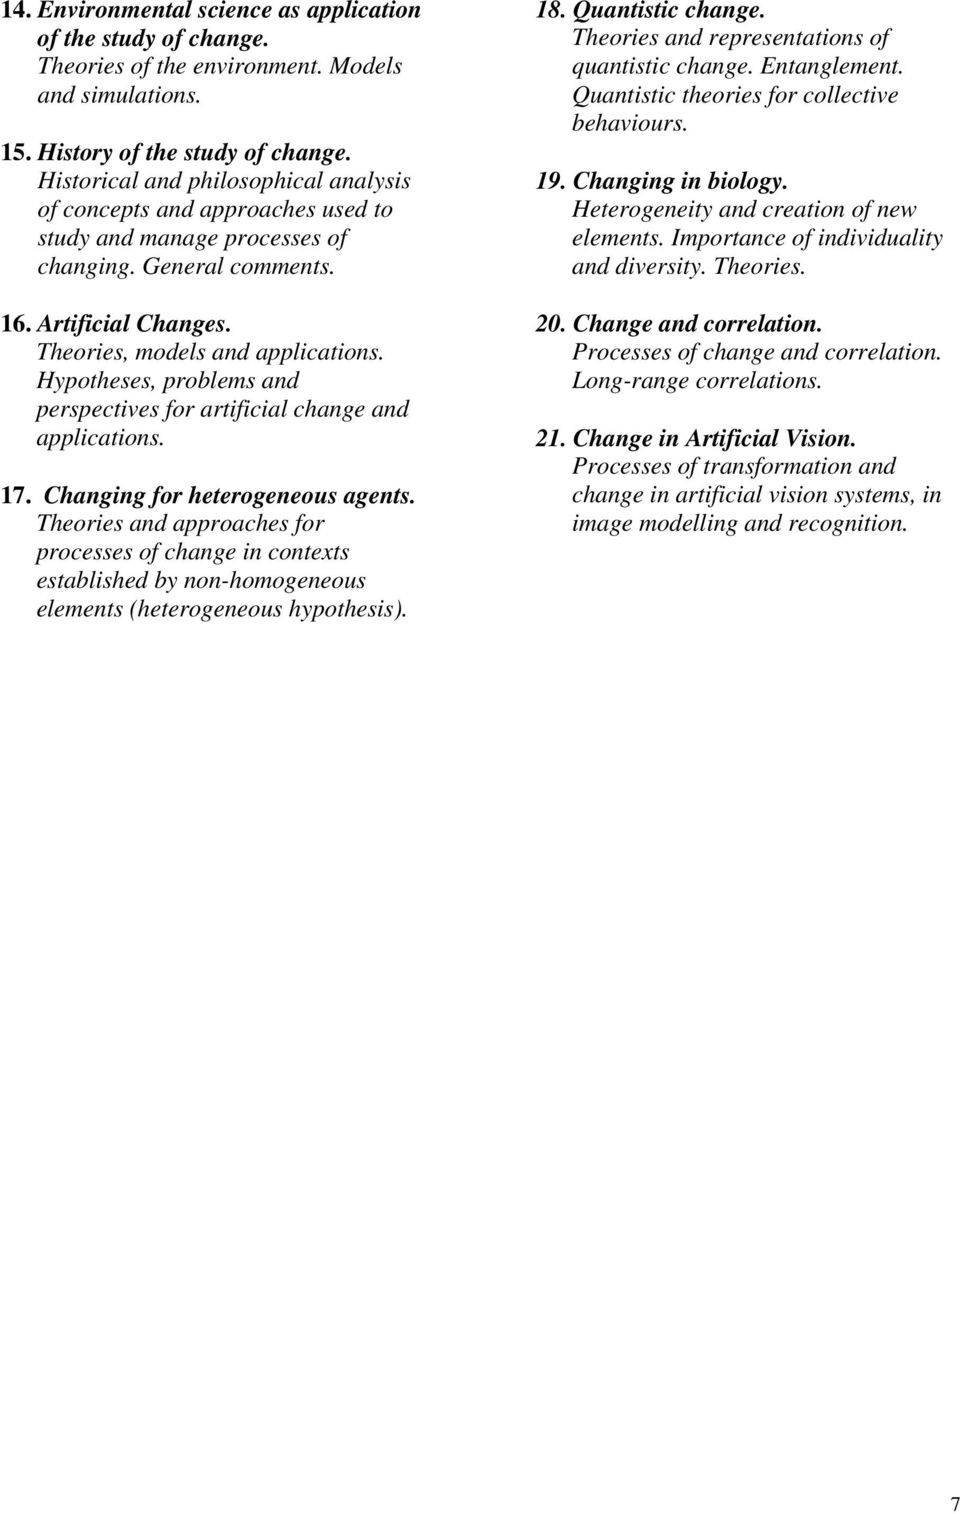 Hypotheses, problems and perspectives for artificial change and applications. 17. Changing for heterogeneous agents.